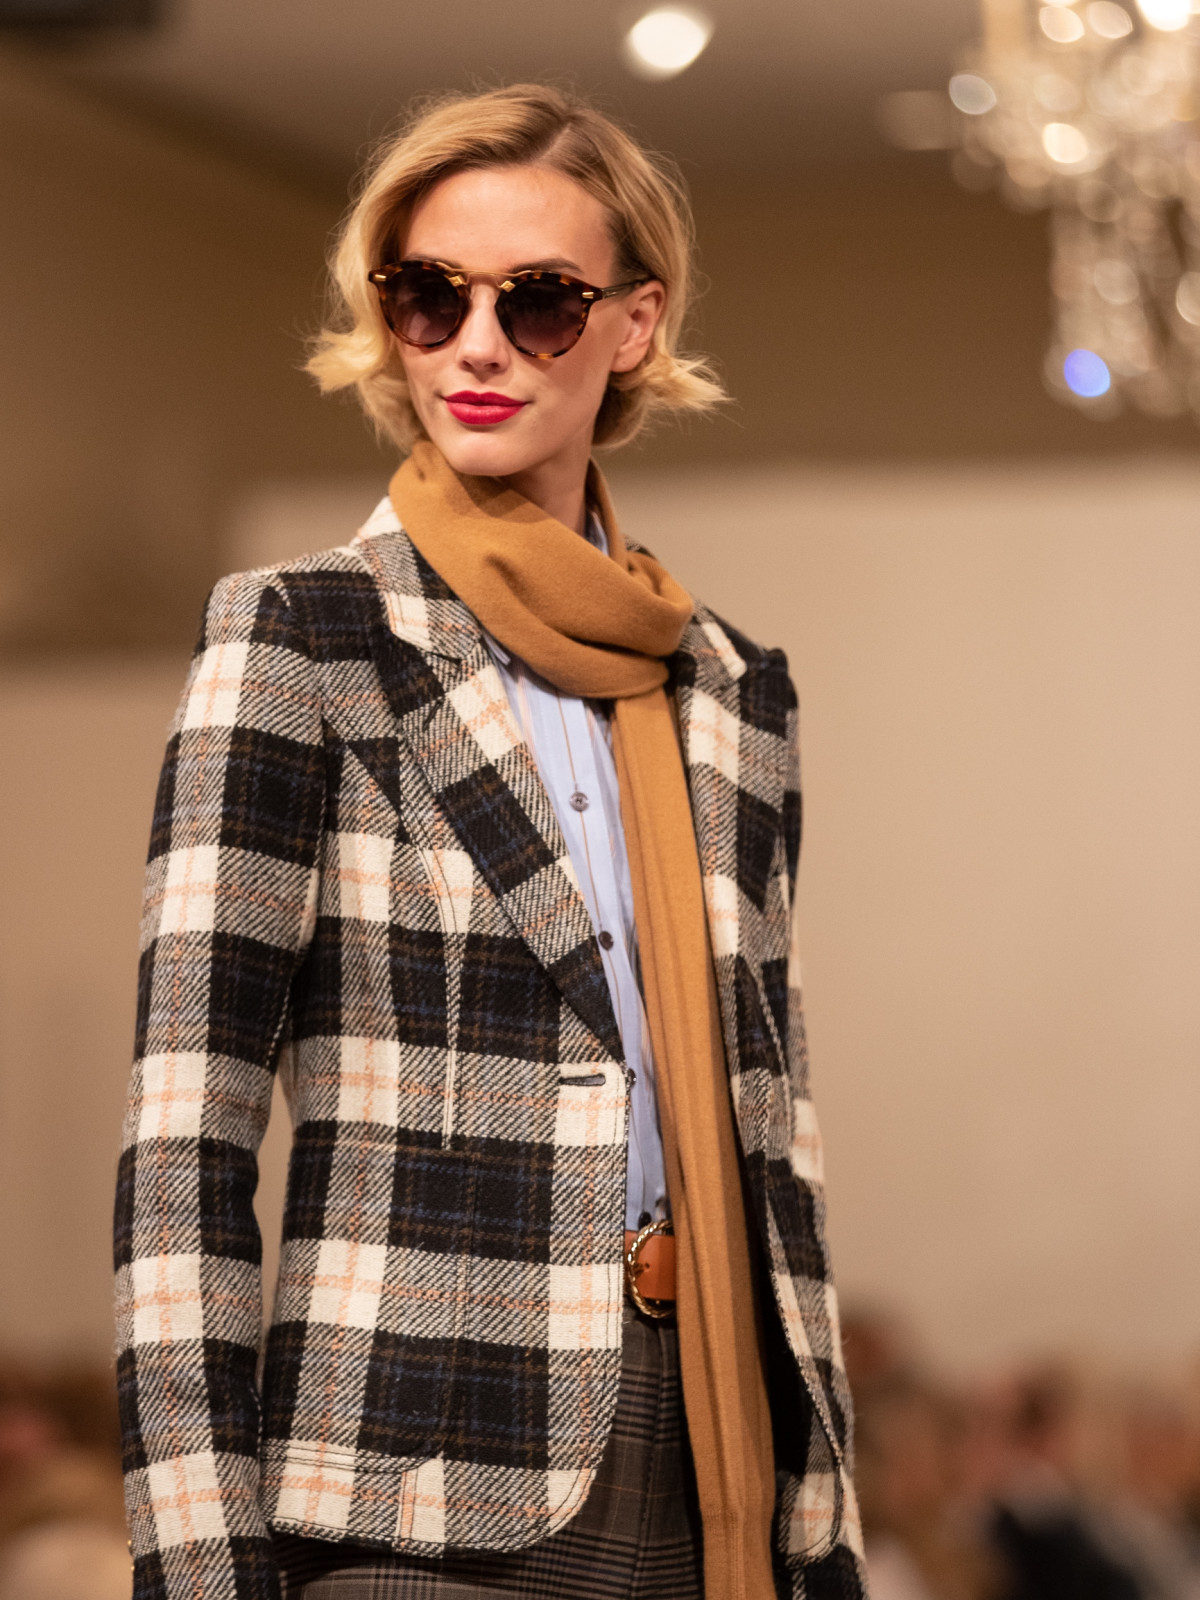 SMYTHE Plaid Blazer, DEREK LAM 10 CROSBY Sky Blouse, SEA Slate Plaid